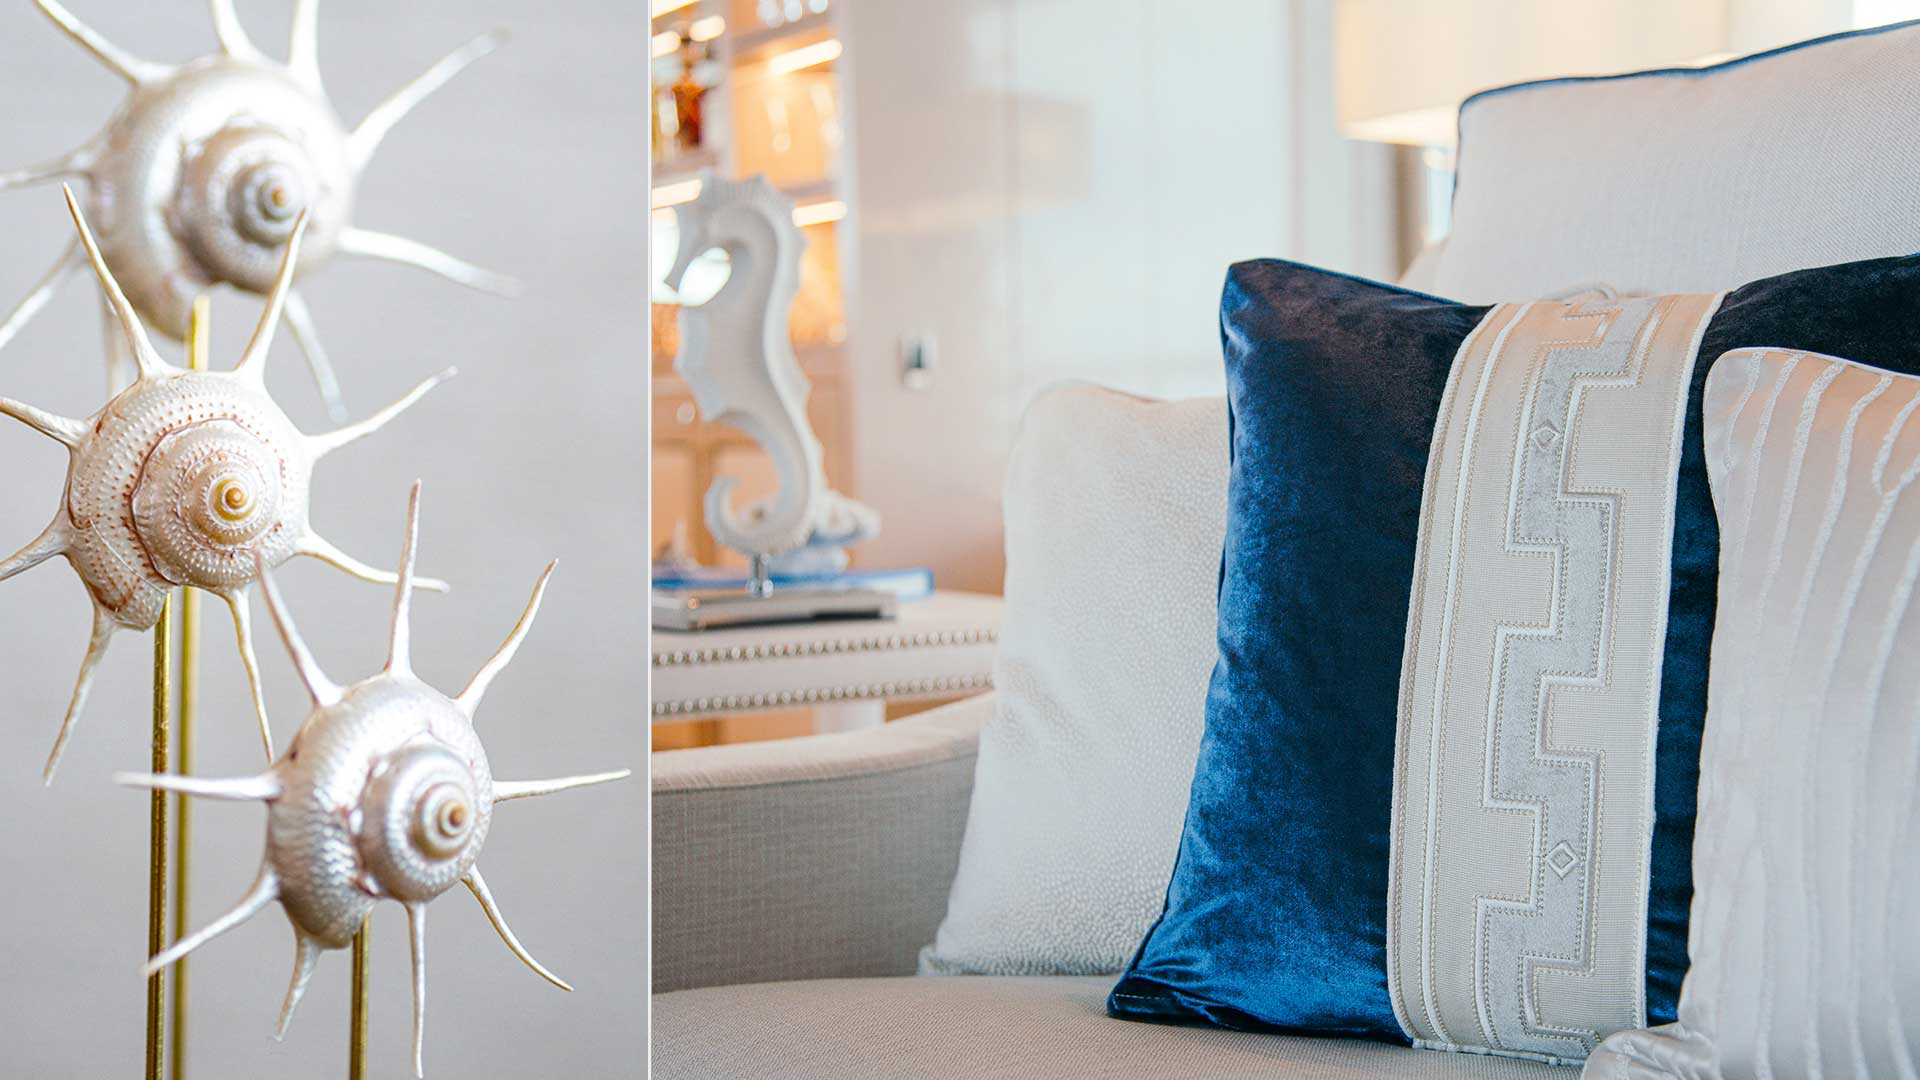 YACHT-REFIT-AMELS-LIMITED-EDITION-13-Dome-interior-design-Geneve-Suisse